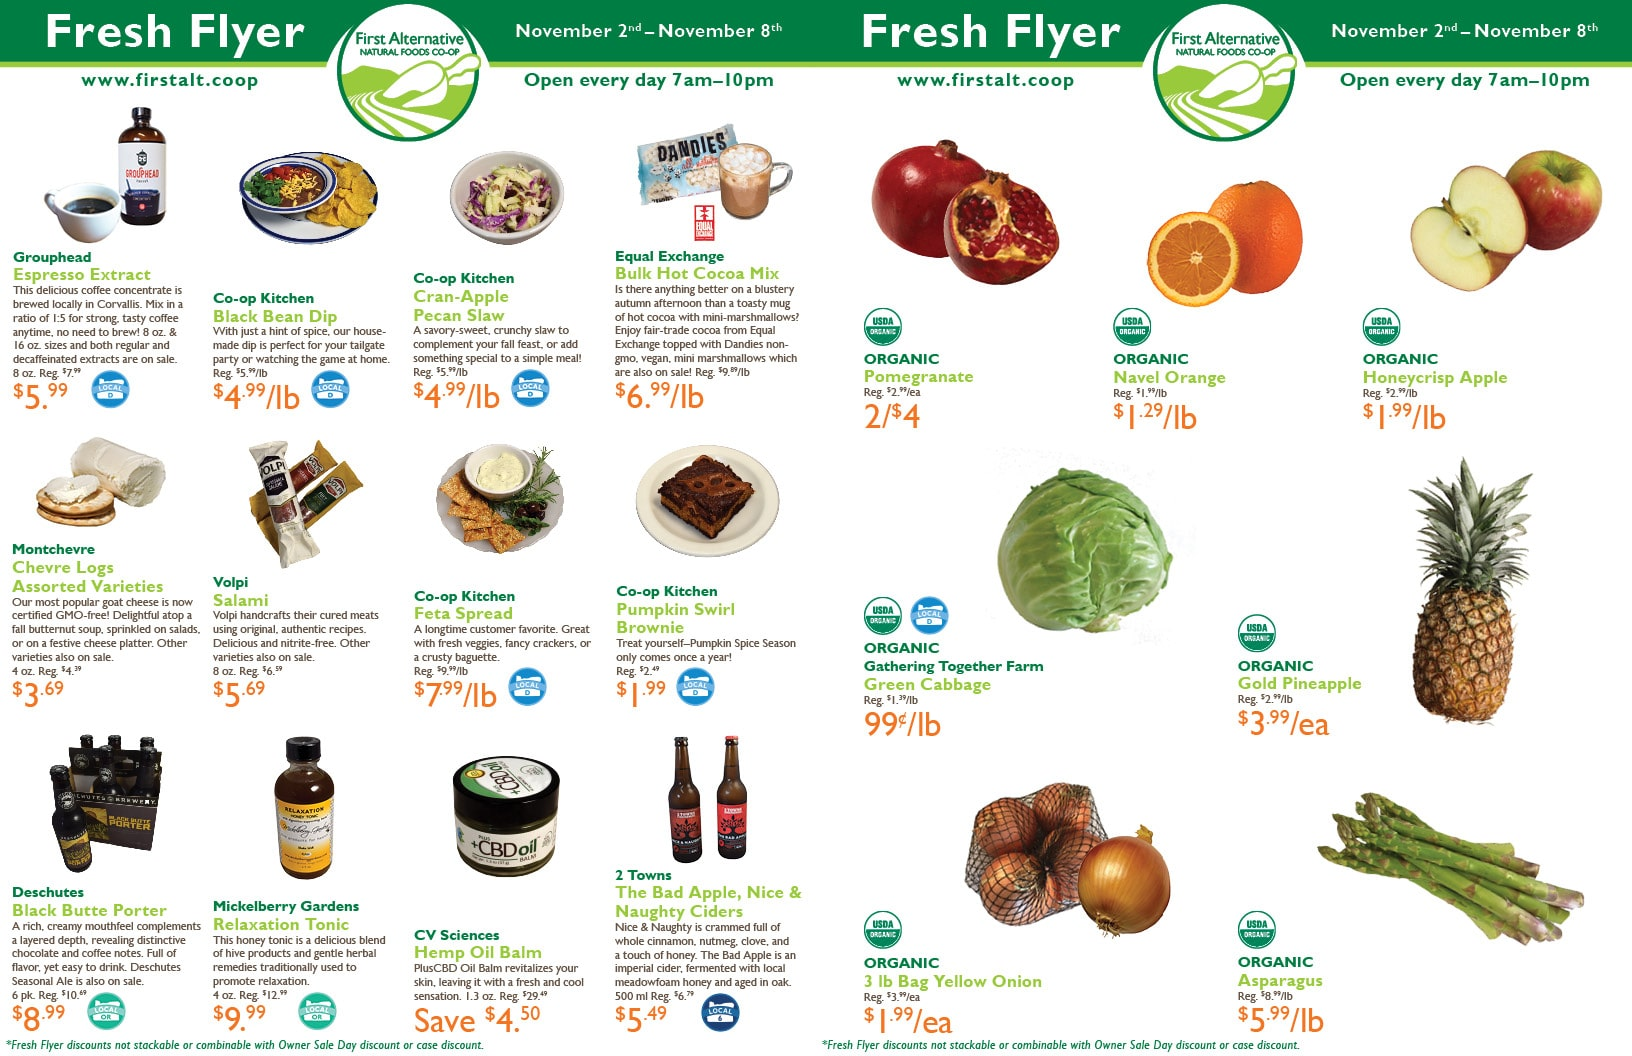 First Alternative Co-op Fresh Flyer November 2-8